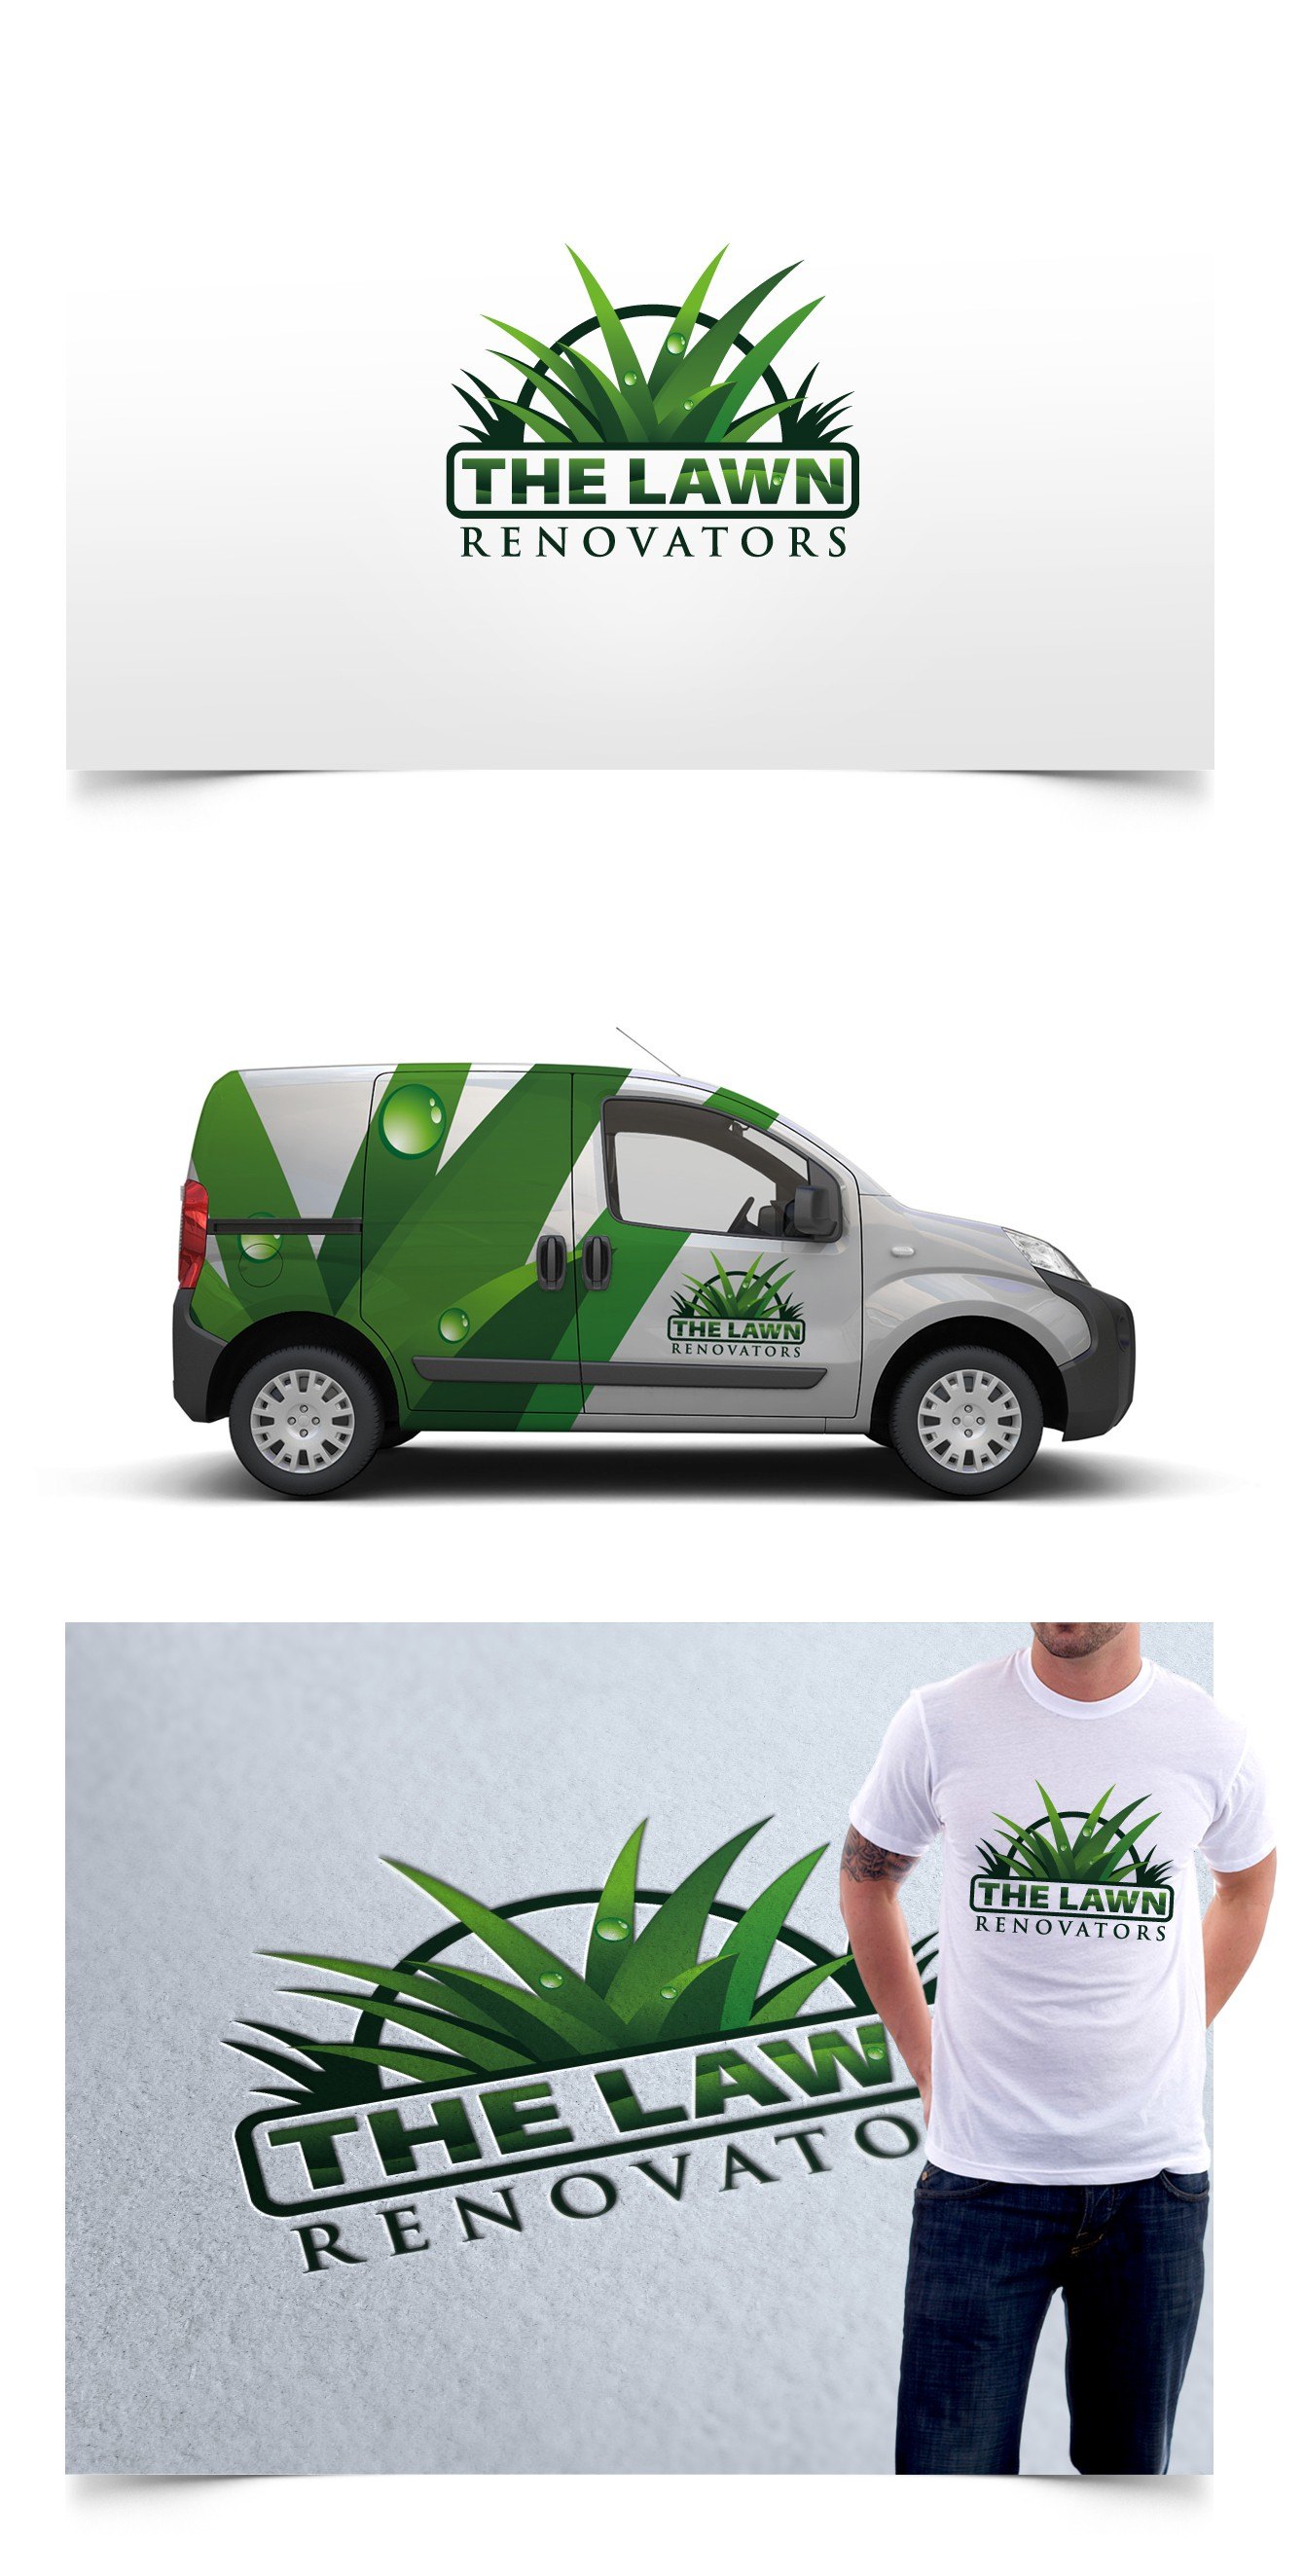 Create the next logo for The Lawn Renovators